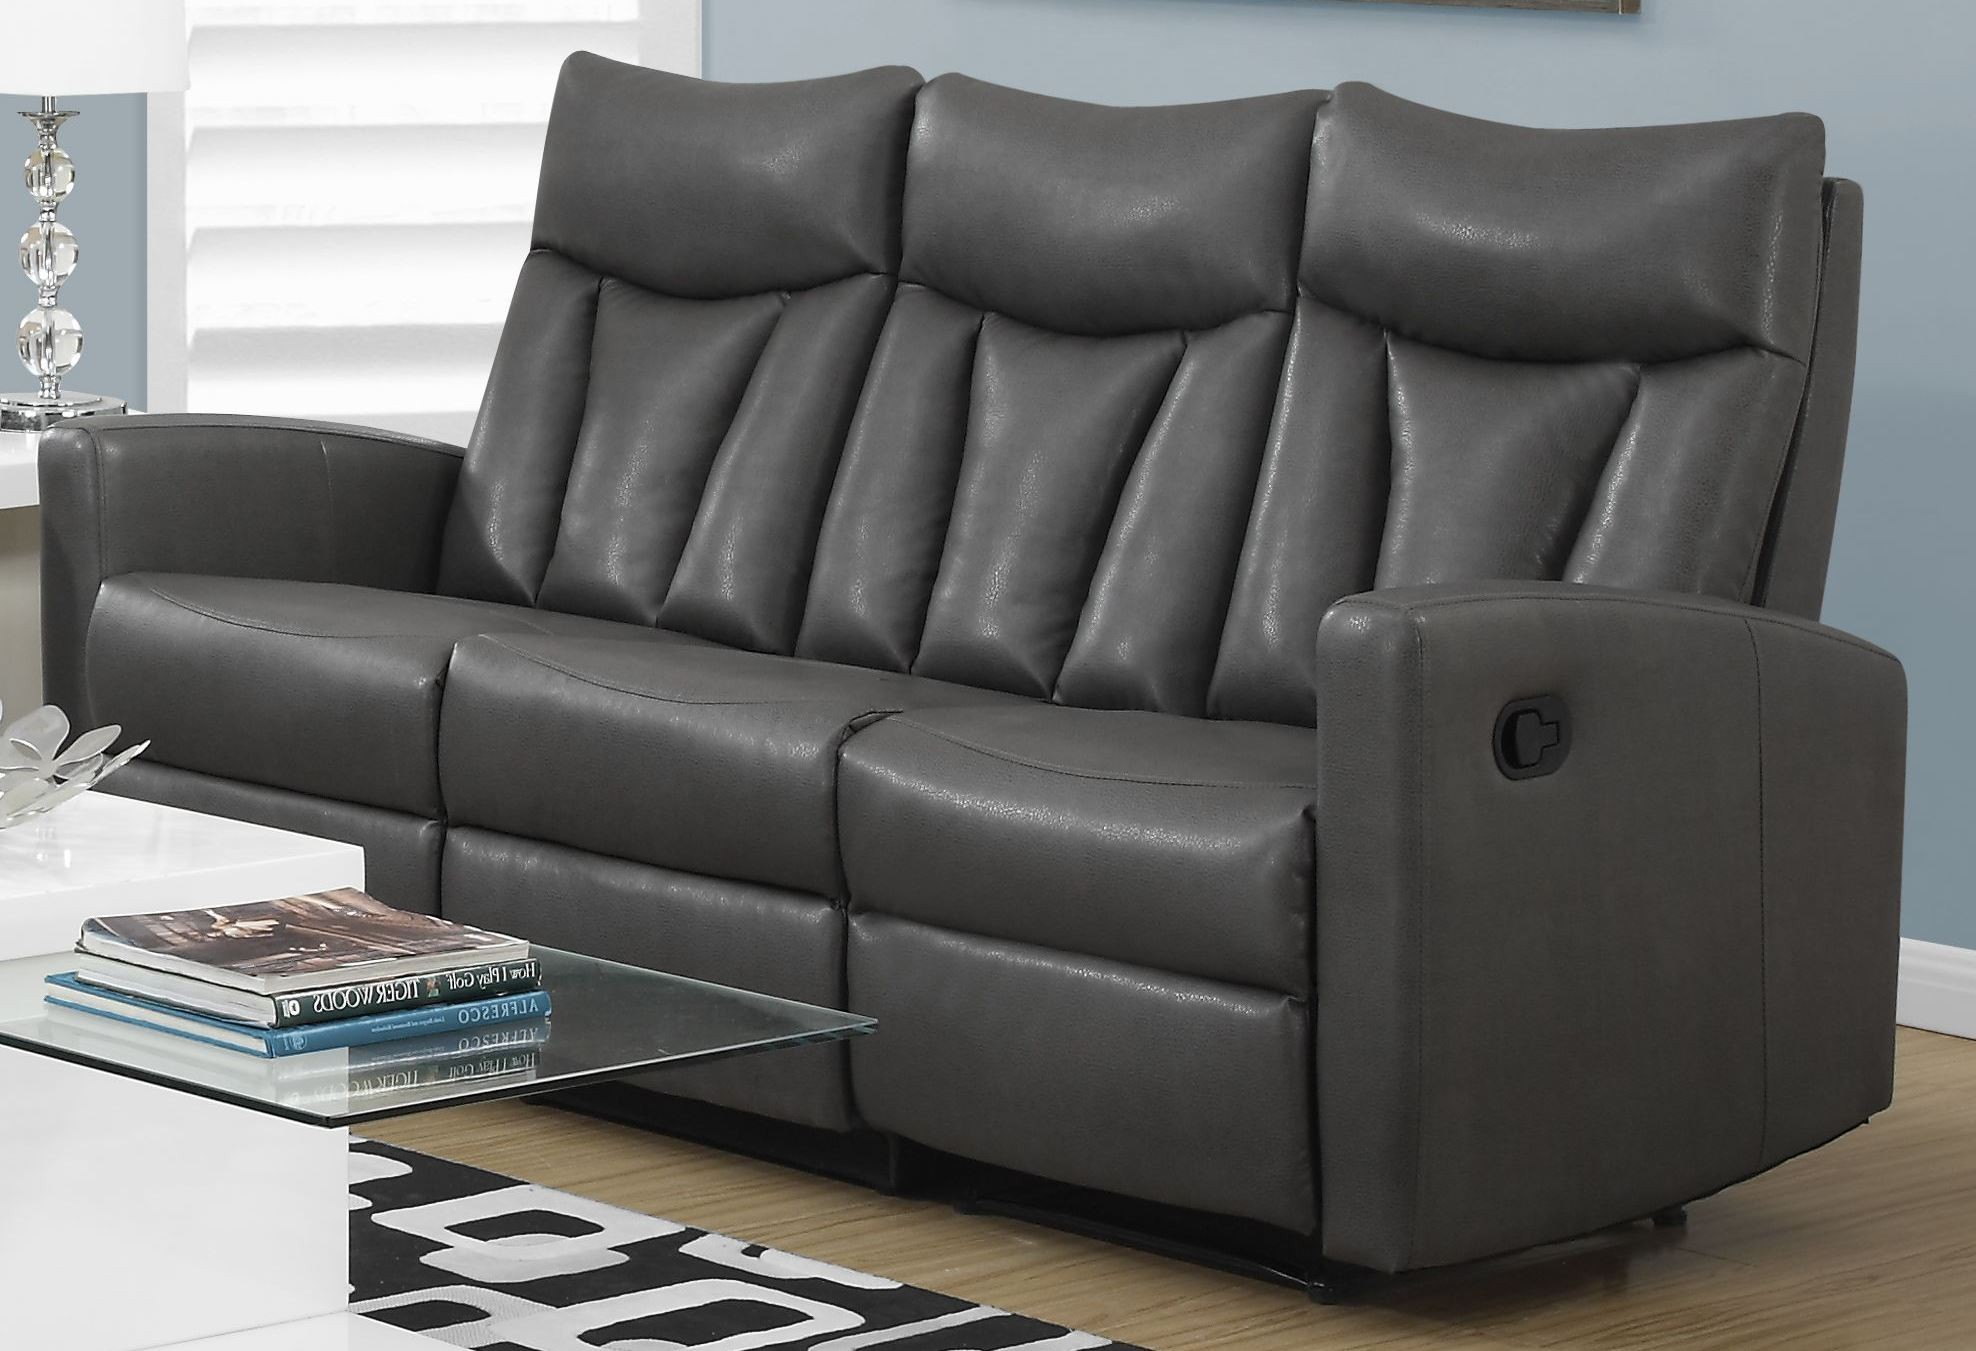 87gy 3 charcoal grey bonded leather reclining sofa 87gy 3 monarch. Black Bedroom Furniture Sets. Home Design Ideas